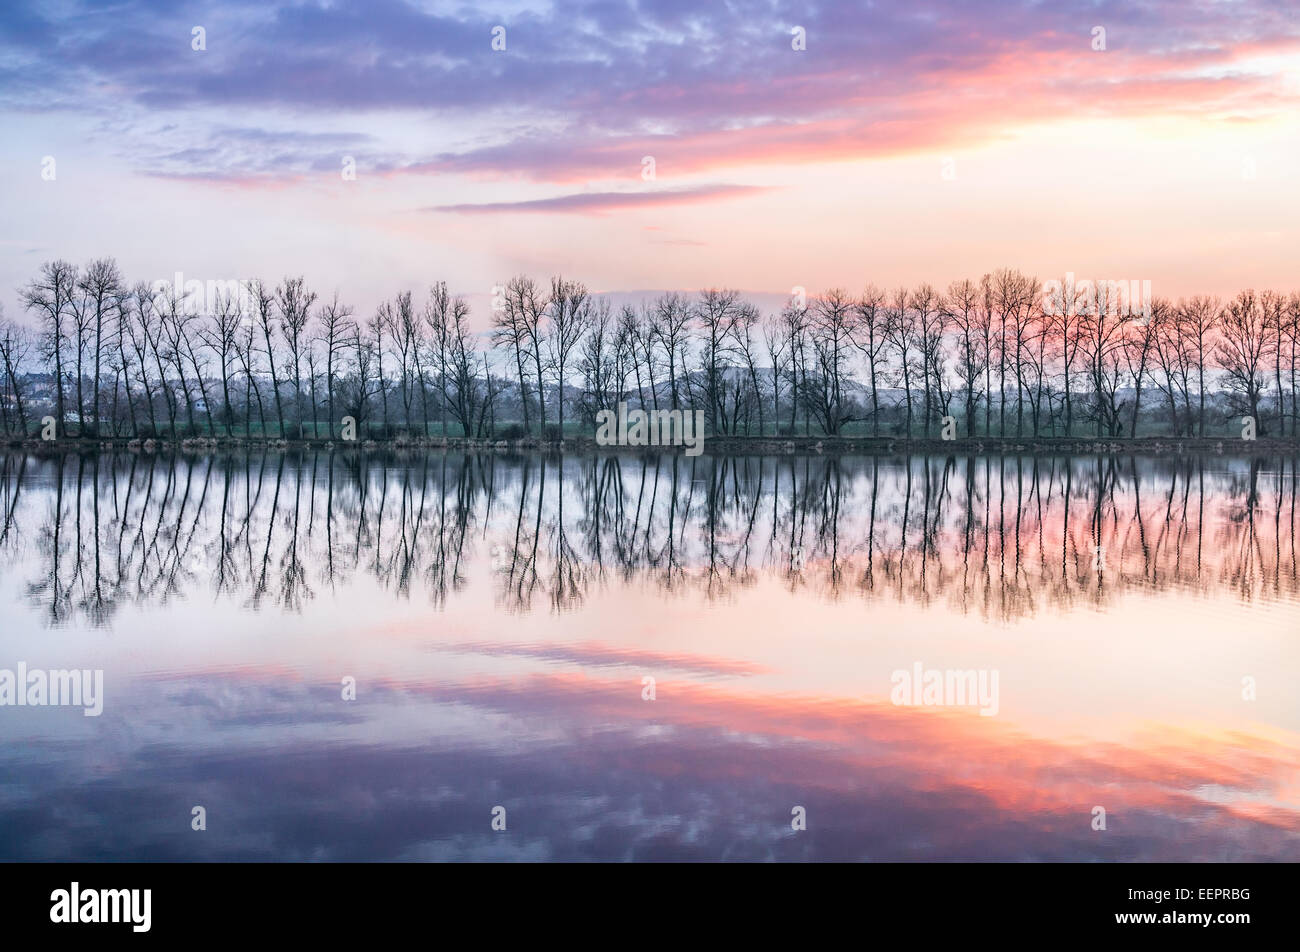 Turynsky pond, Turynsky rybnik, Zaplavy, sunset, dusk, alley, reflection - Stock Image